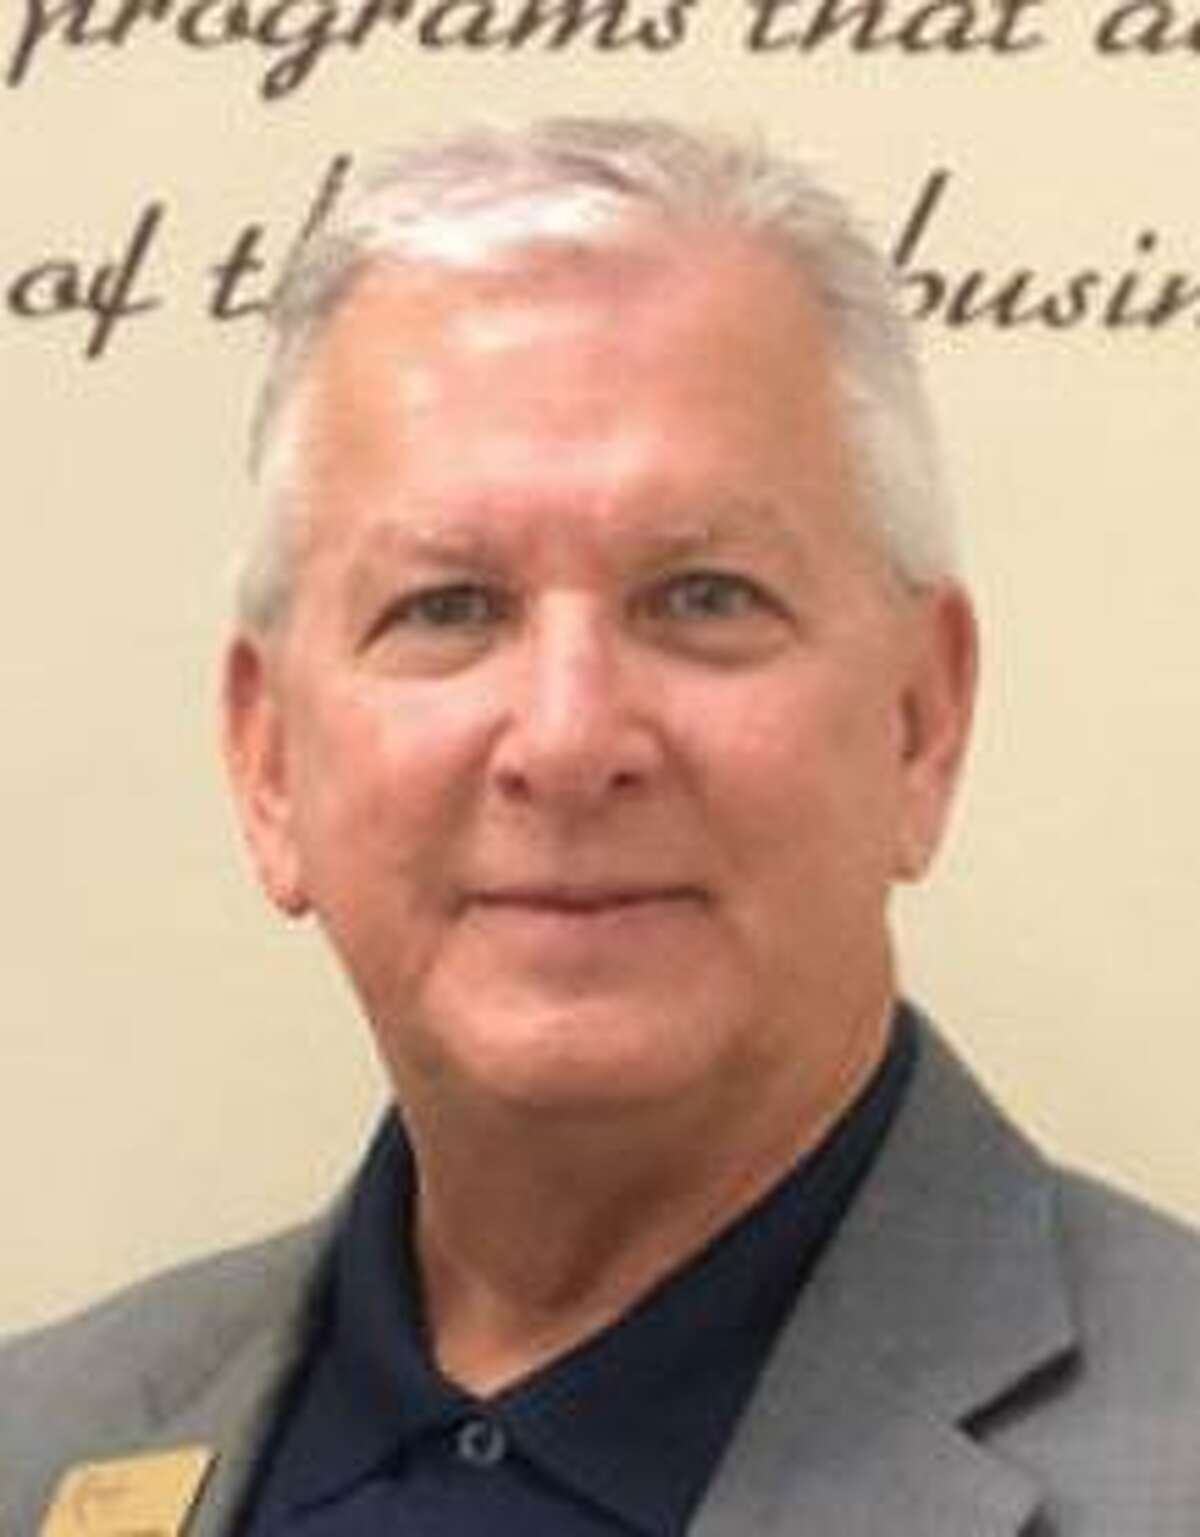 Dallis Warren is the police chief for the Lamar CISD Police Department.